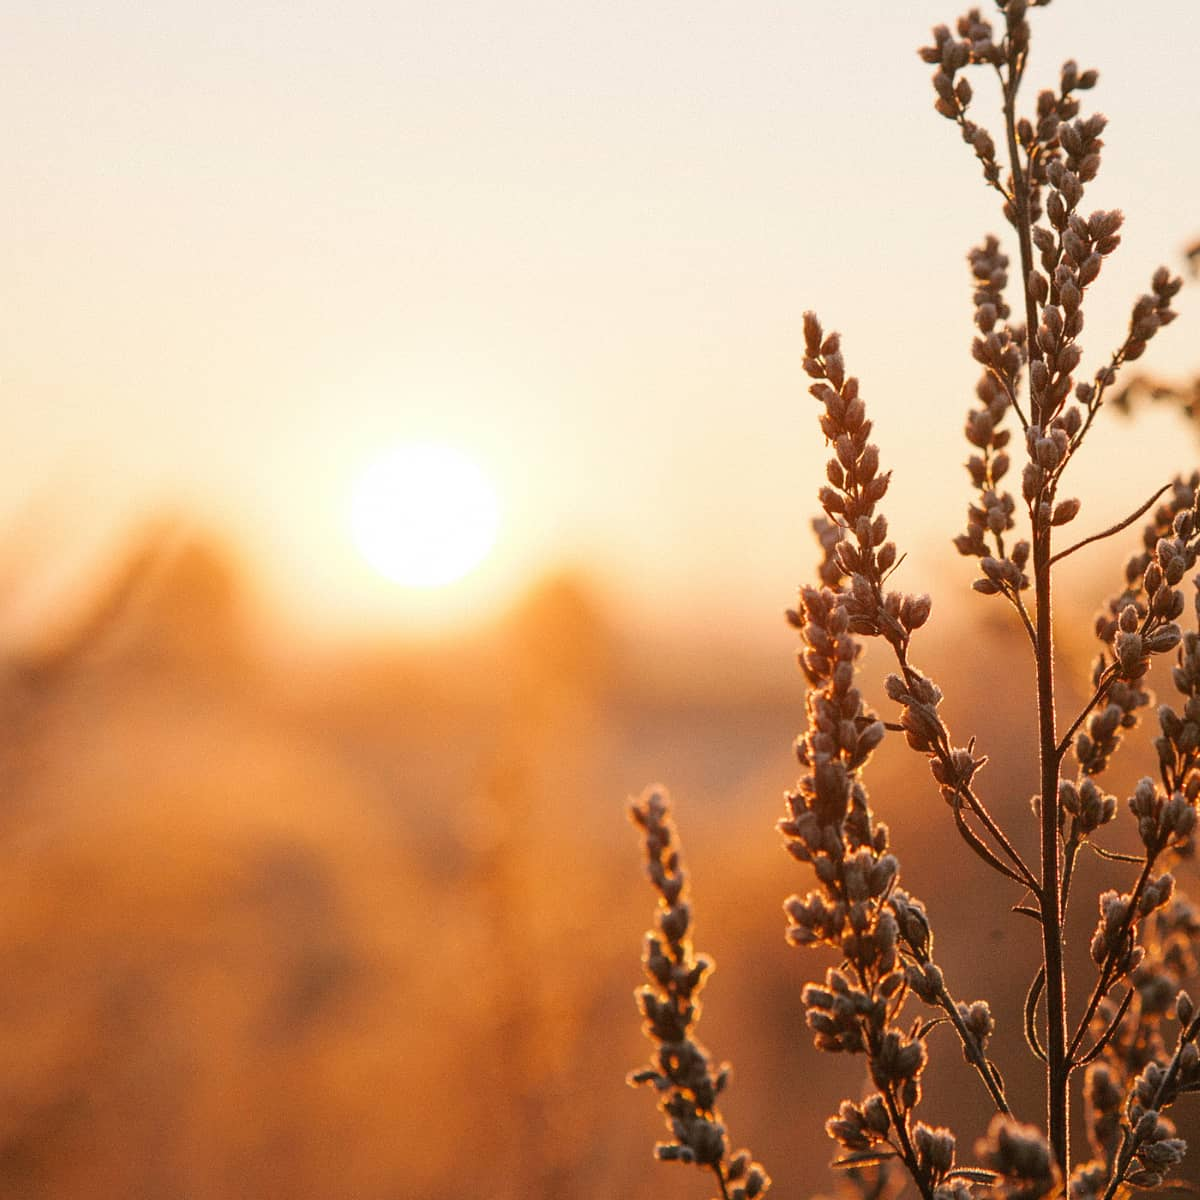 a golden sunrise over a wheat field in the background.